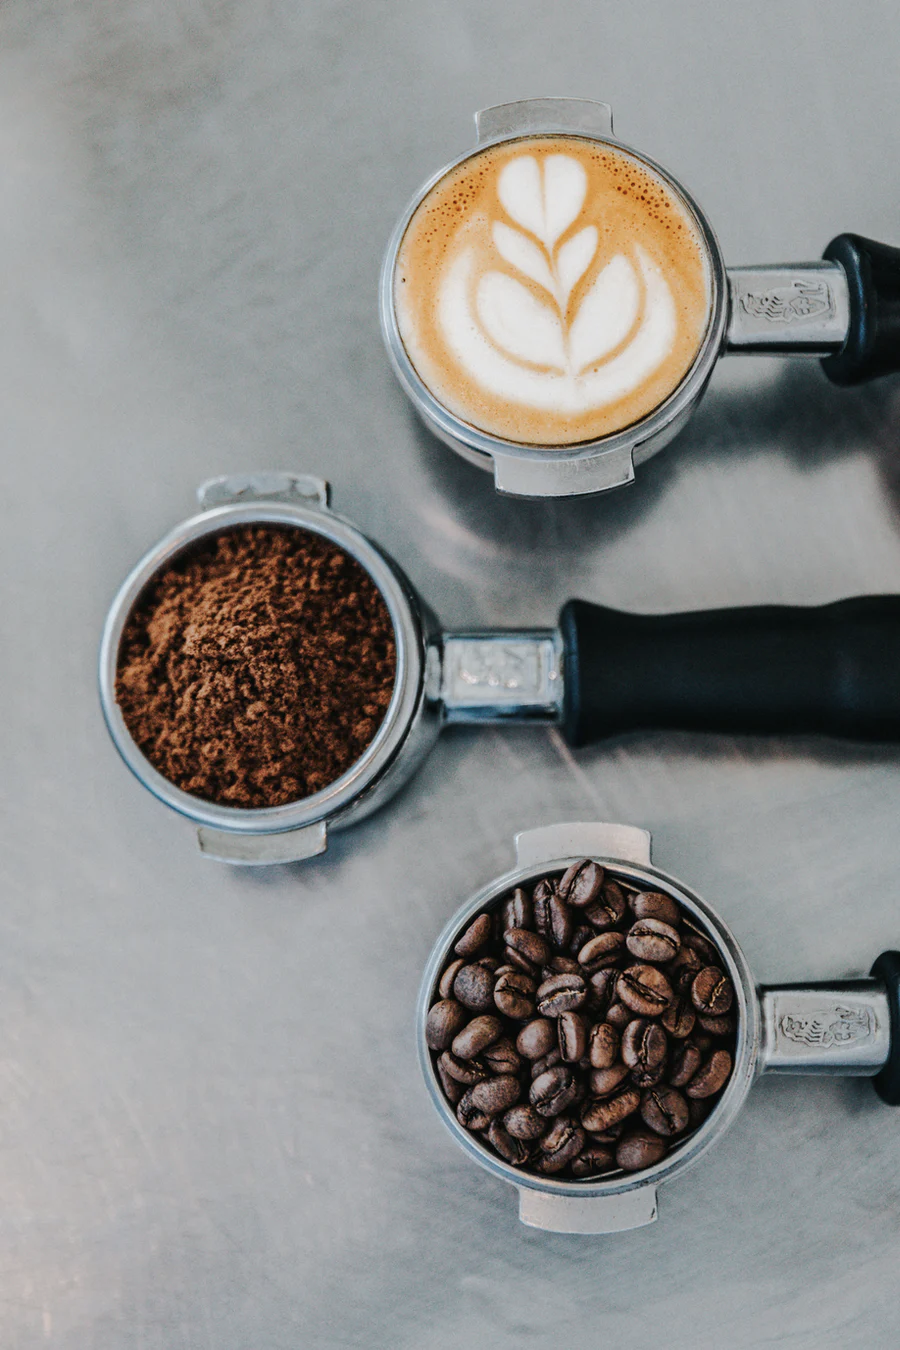 Coffee Pictures Download Free Images On Unsplash Starting A Coffee Shop Gourmet Coffee Coffee Shop Business